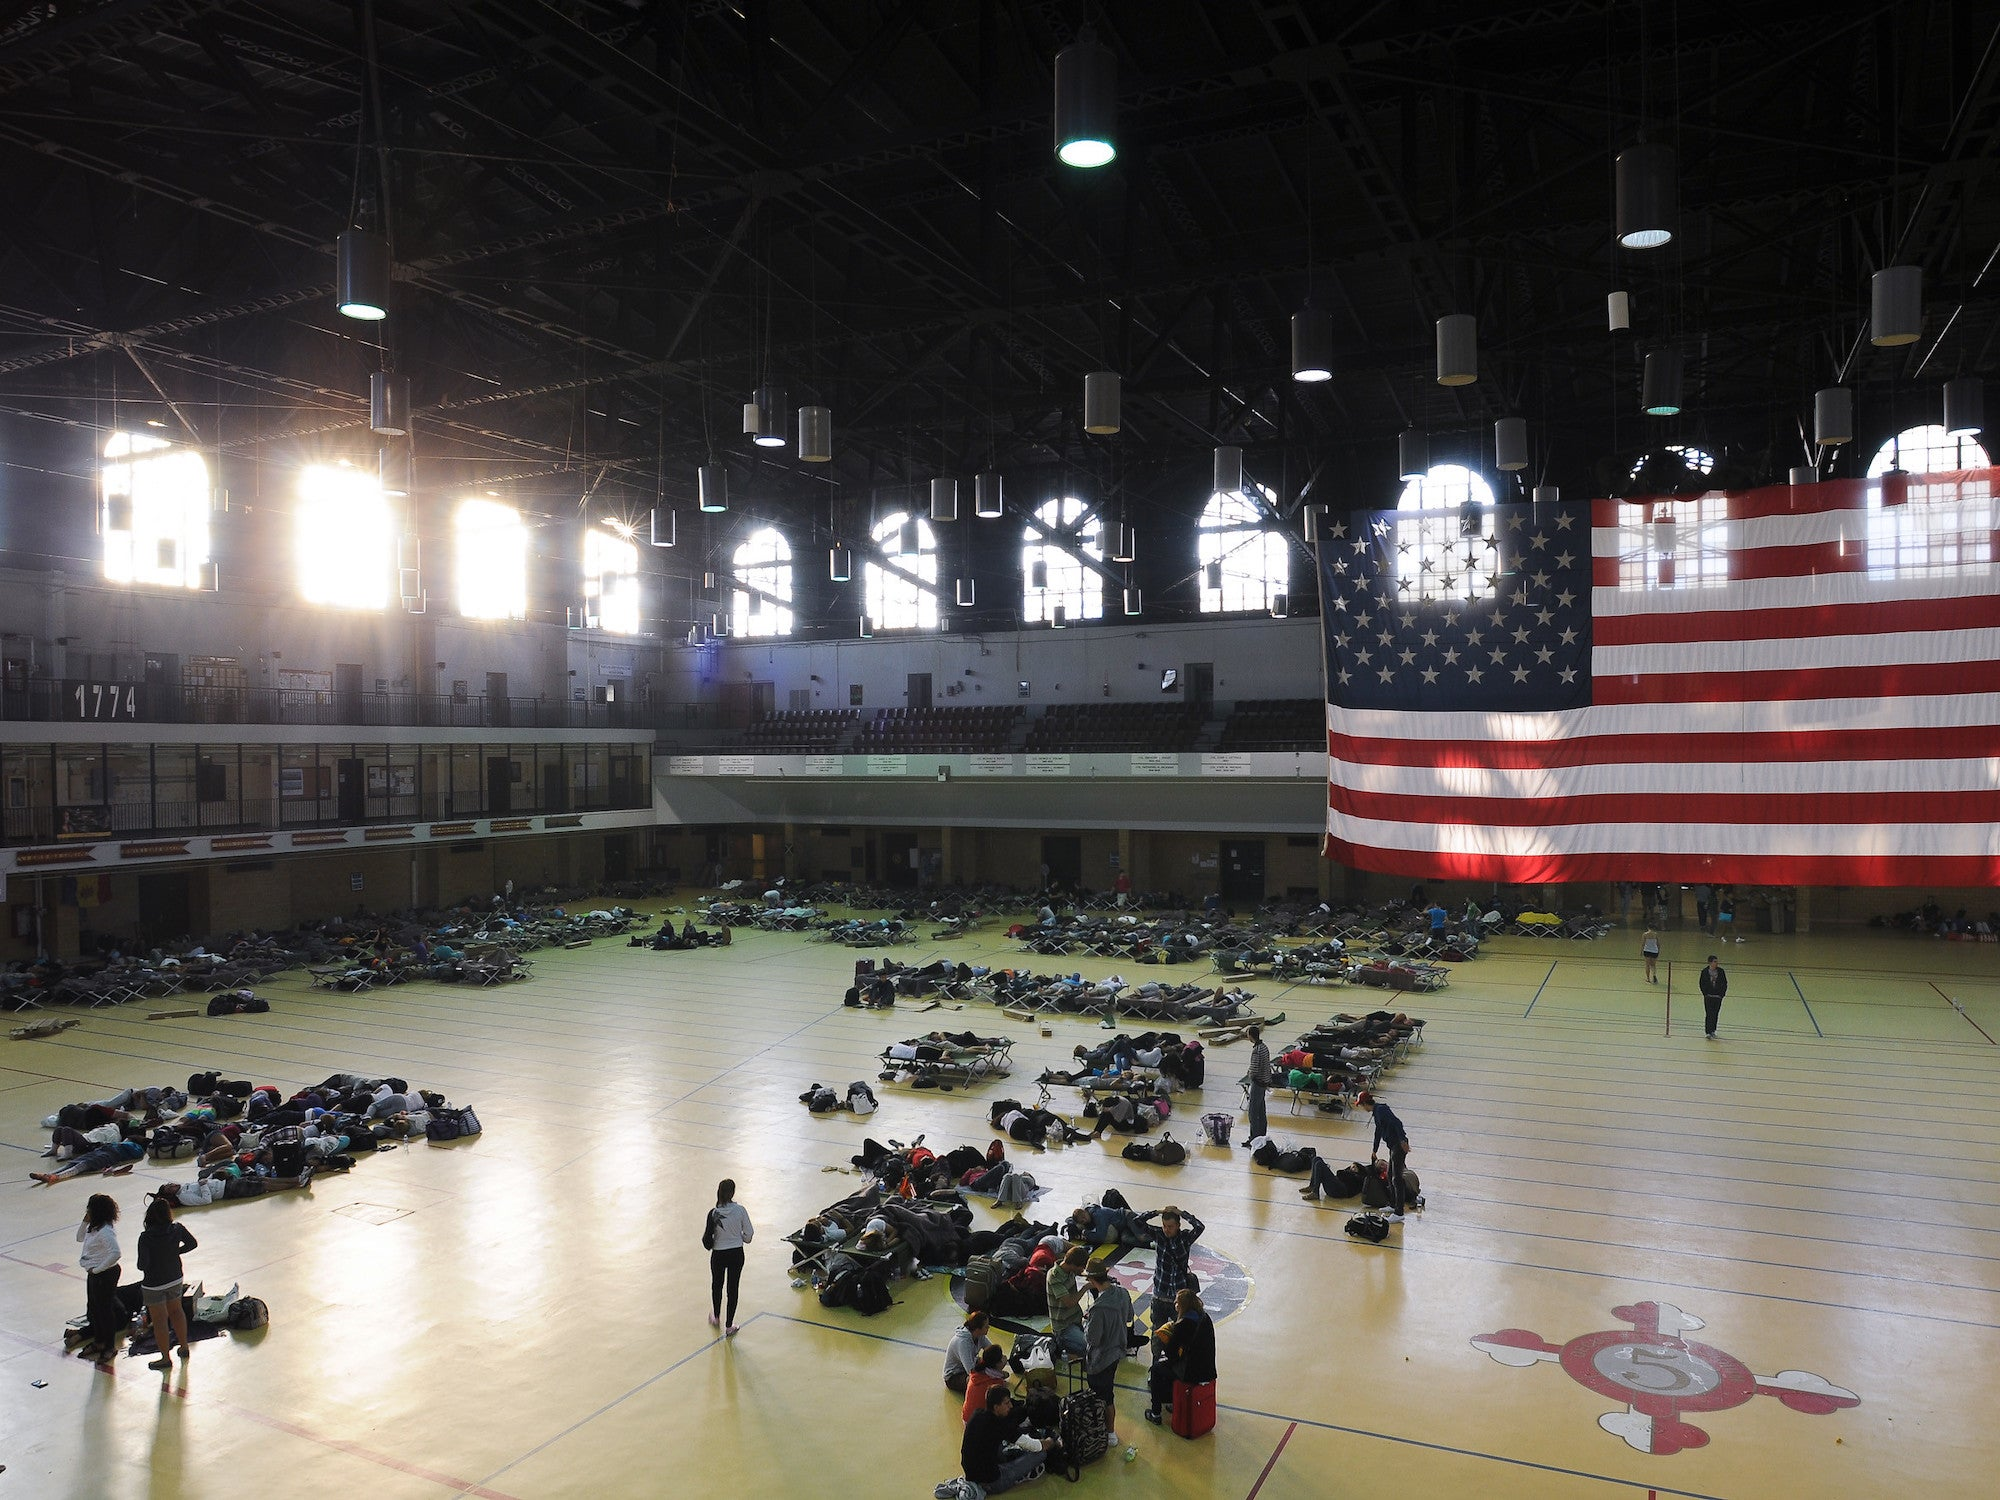 evacuees in what looks like a large gym